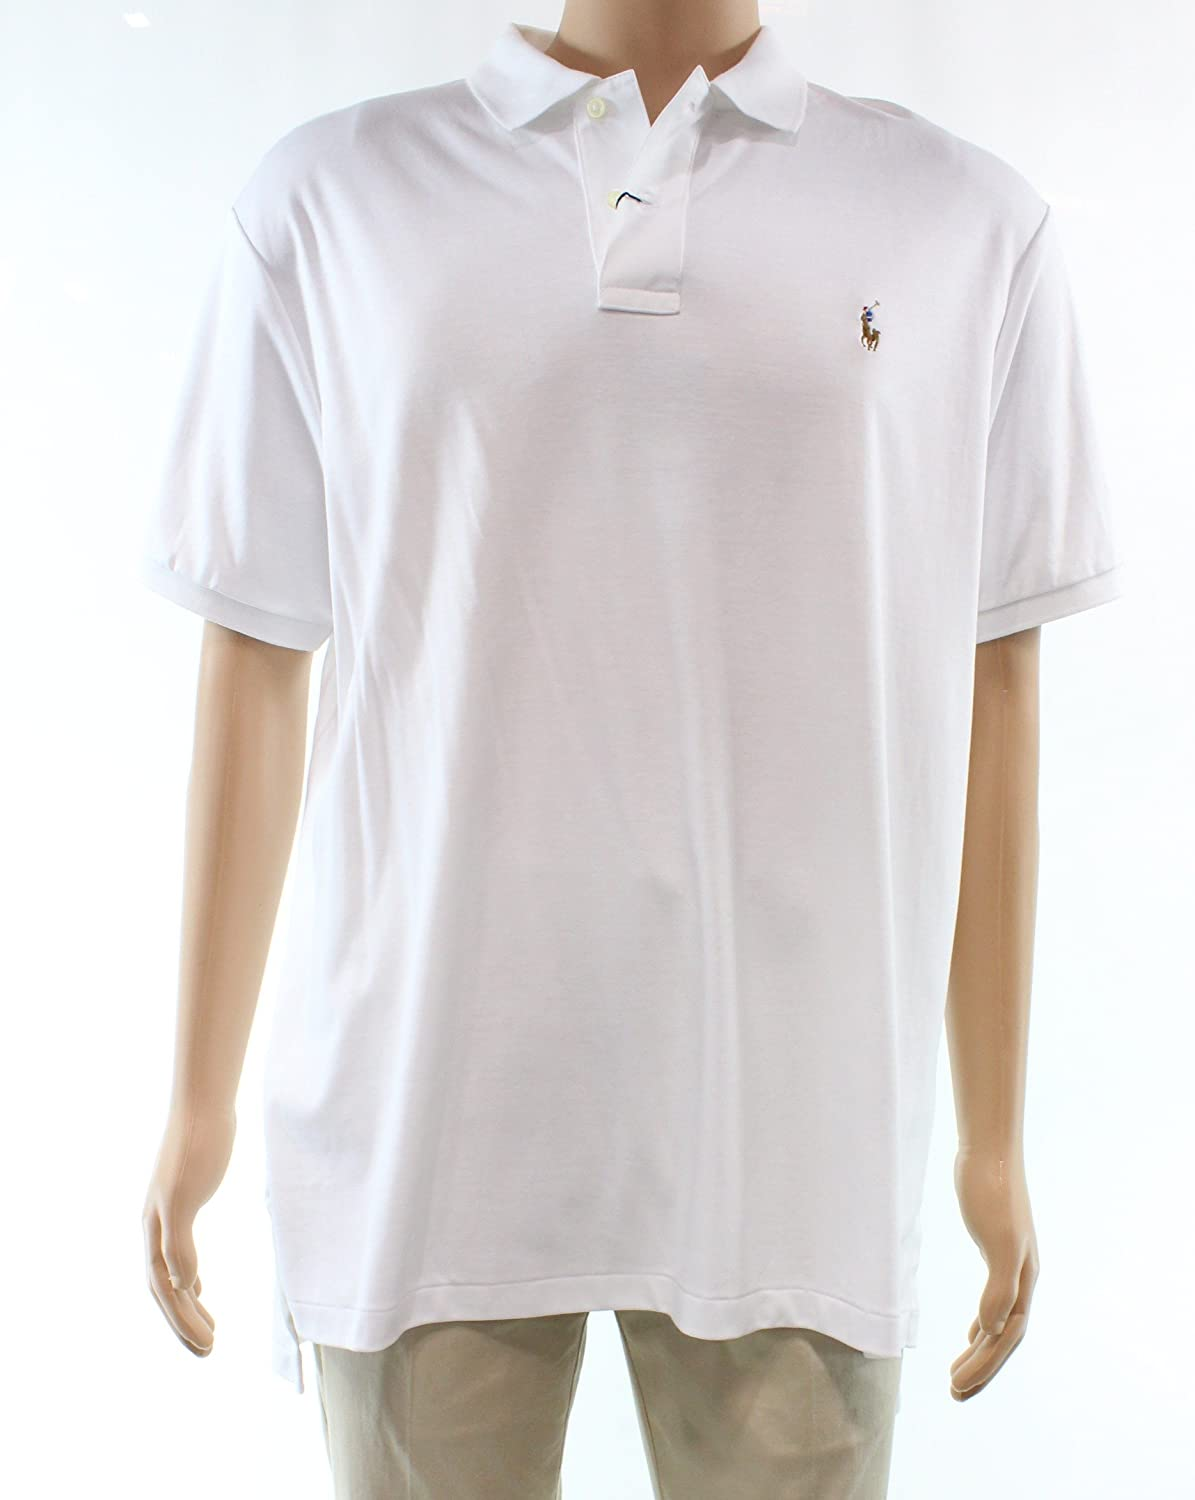 c1a037b3d 100% Cotton Polo Ralph Lauren Men Pima Soft Touch Polo Shirt Ribbed polo  collar.Two-button placket. Ralph Lauren's multicolored signature  embroidered pony ...